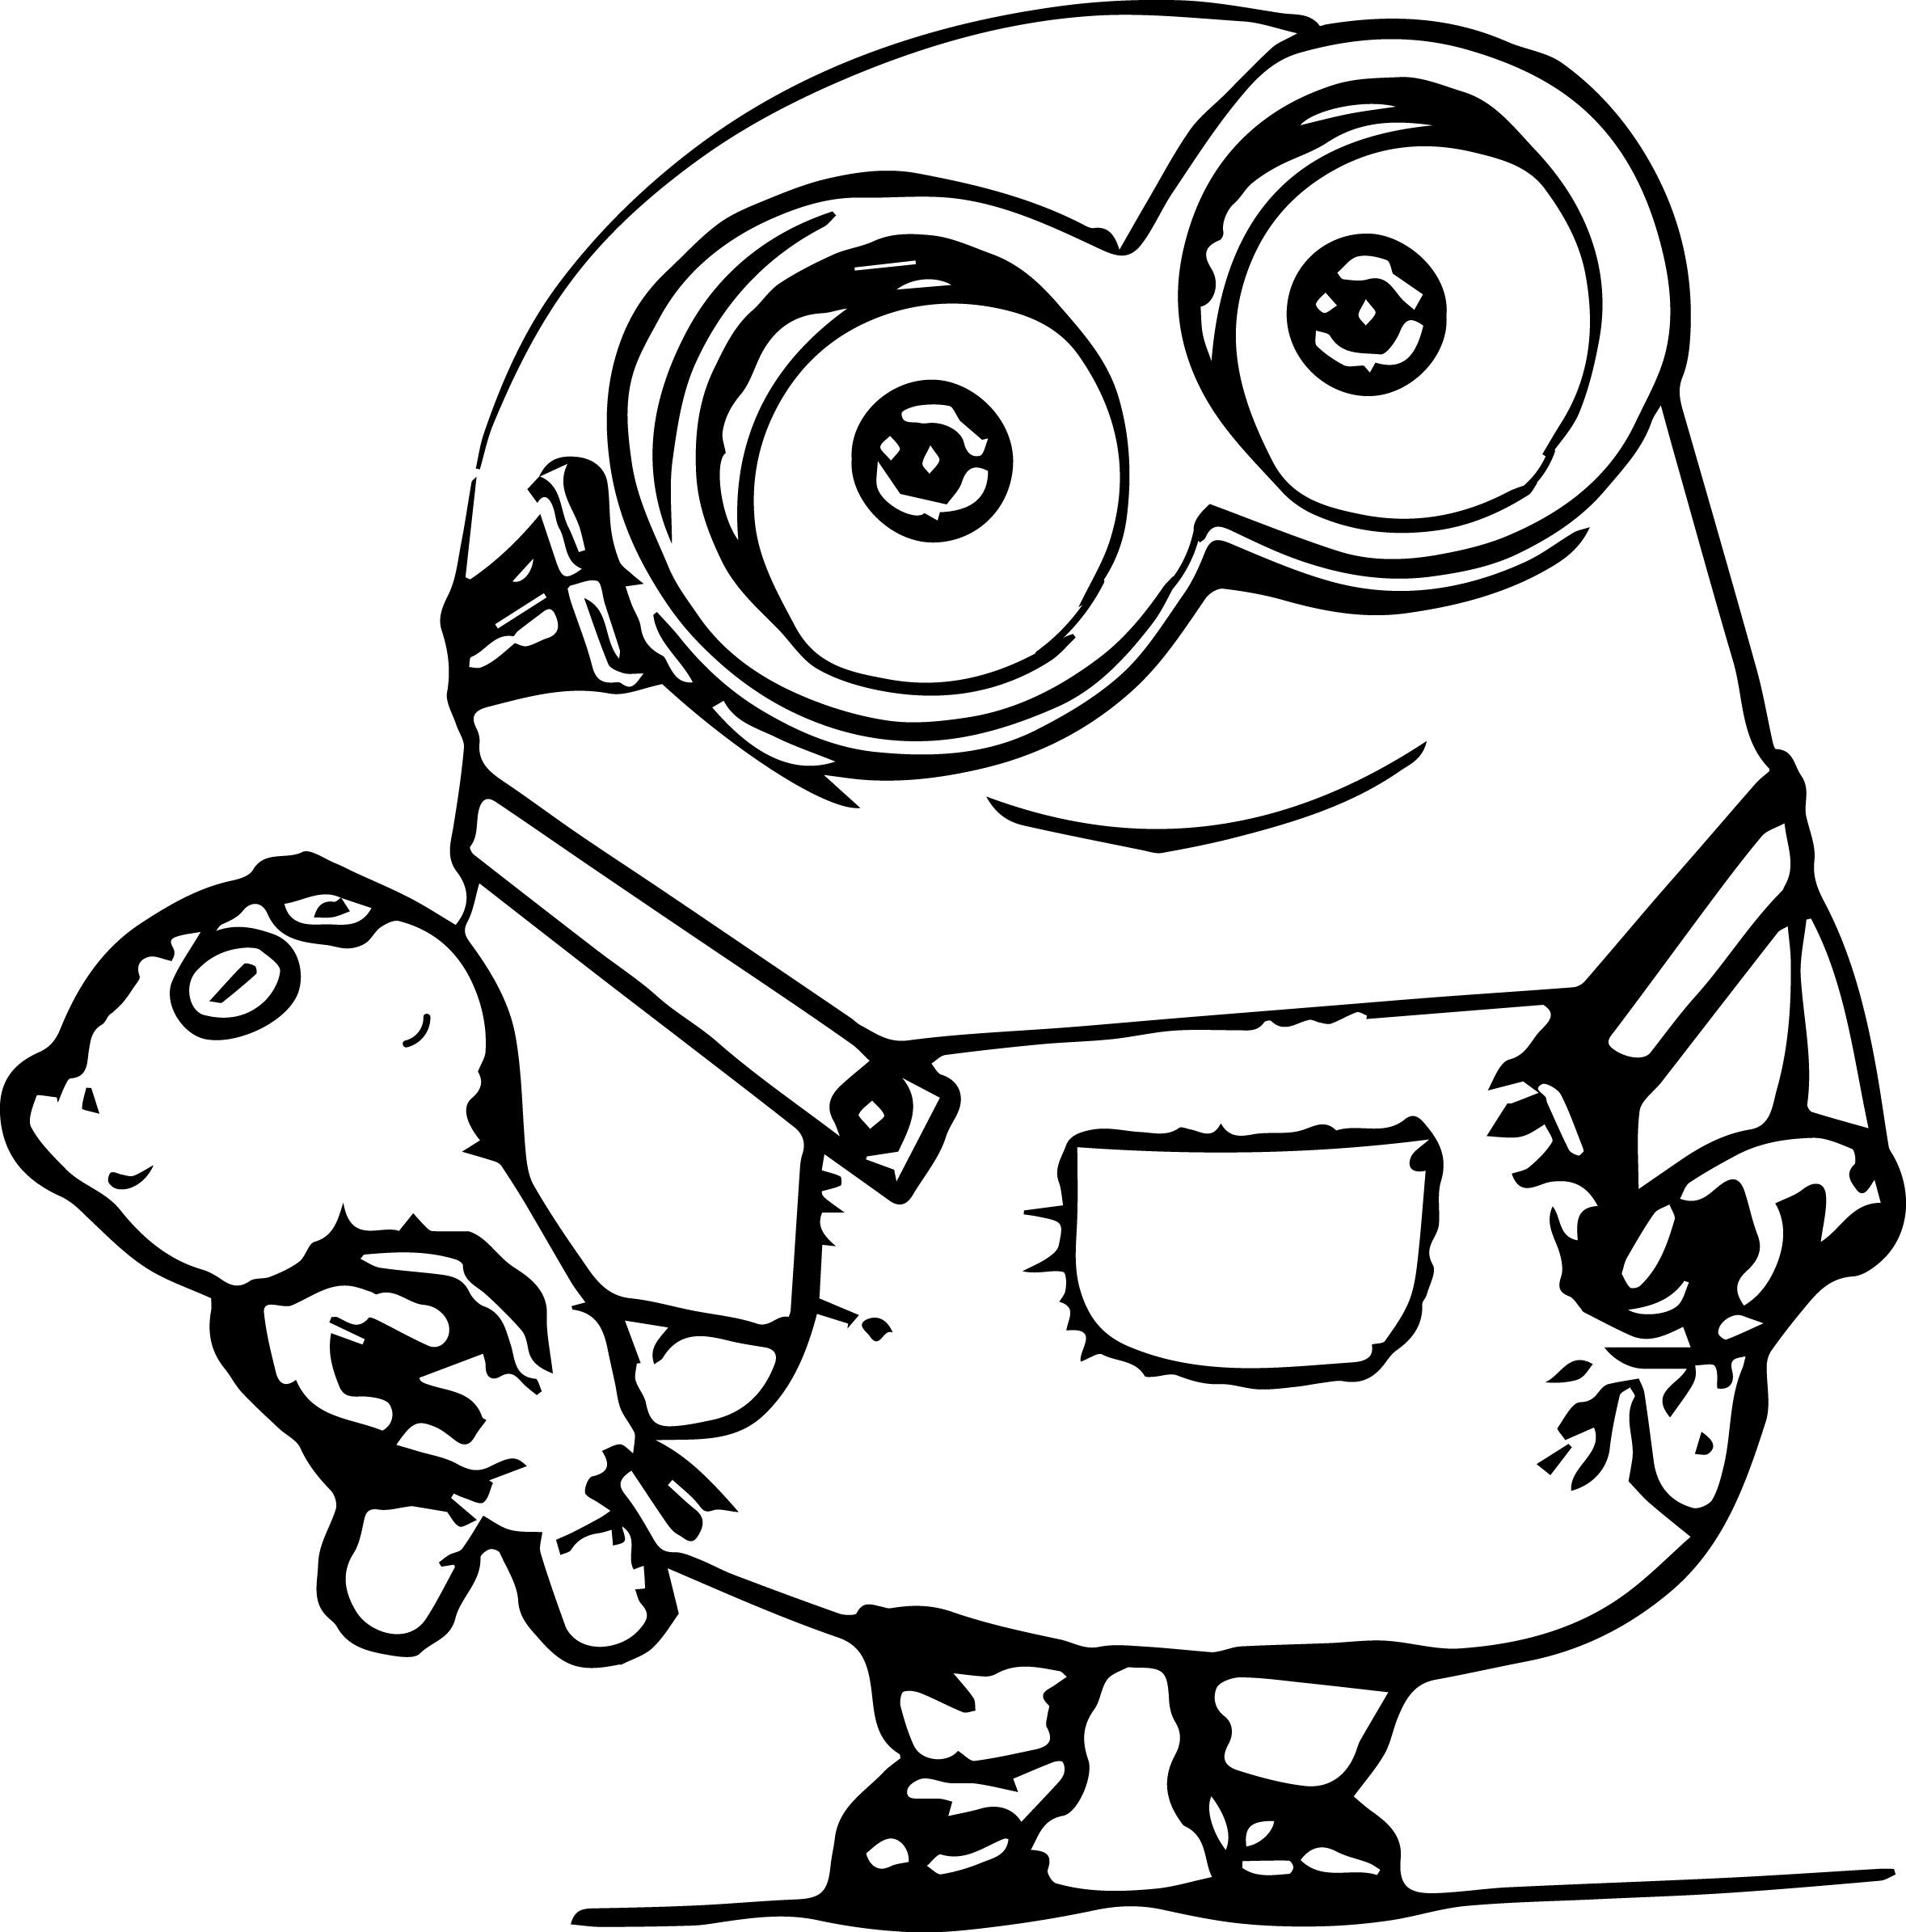 minion colouring pages pdf print download minion coloring pages for kids to have pdf minion pages colouring